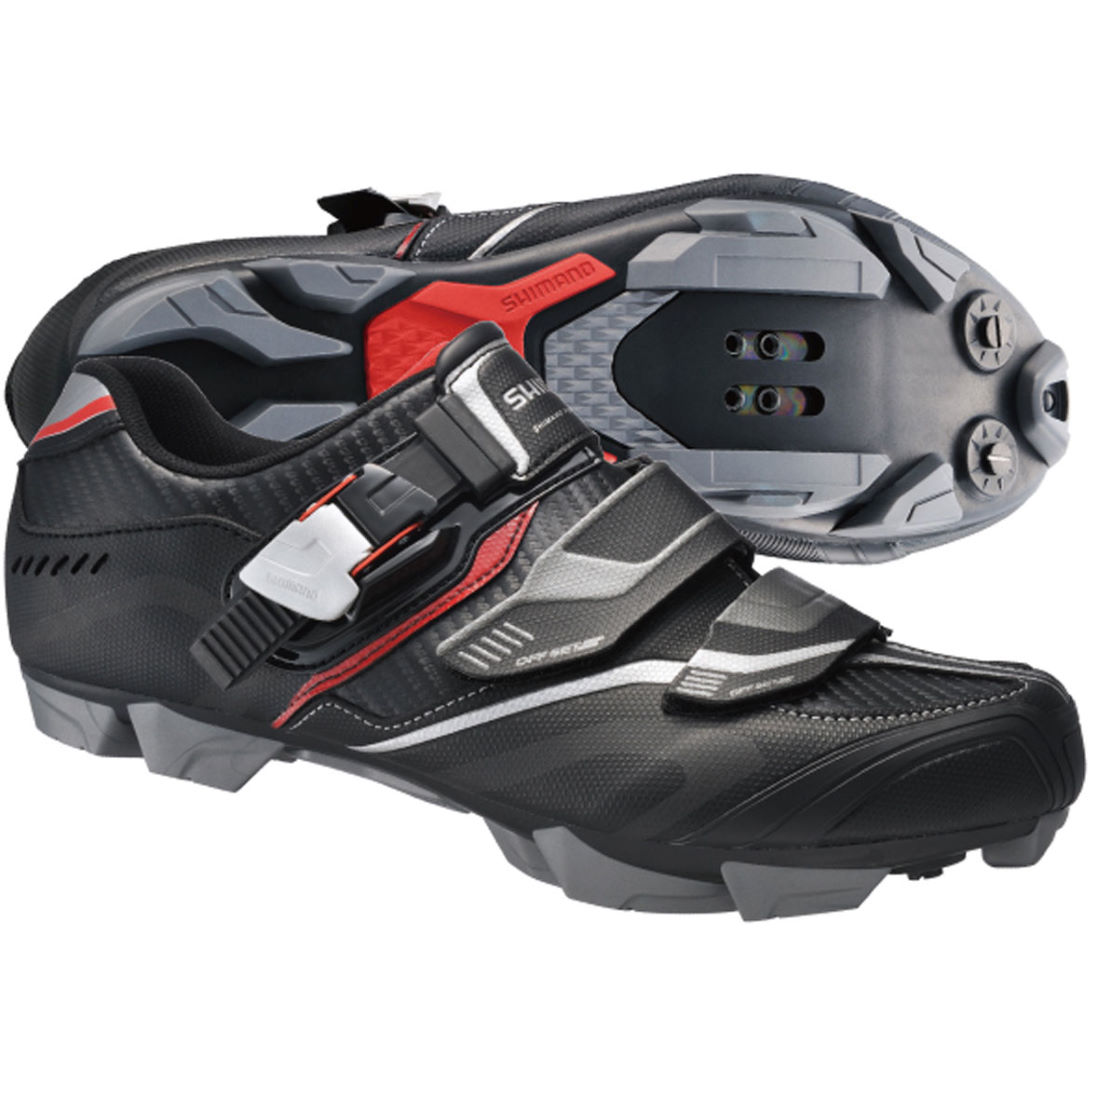 Sidi cycling shoes are some of the most advanced cycling shoes on the market today. We have created this helpful Sidi shoes fitting guide, to help you understand the importance of size, as well as the many features to look out for when buying your next pair of Sidi shoes.